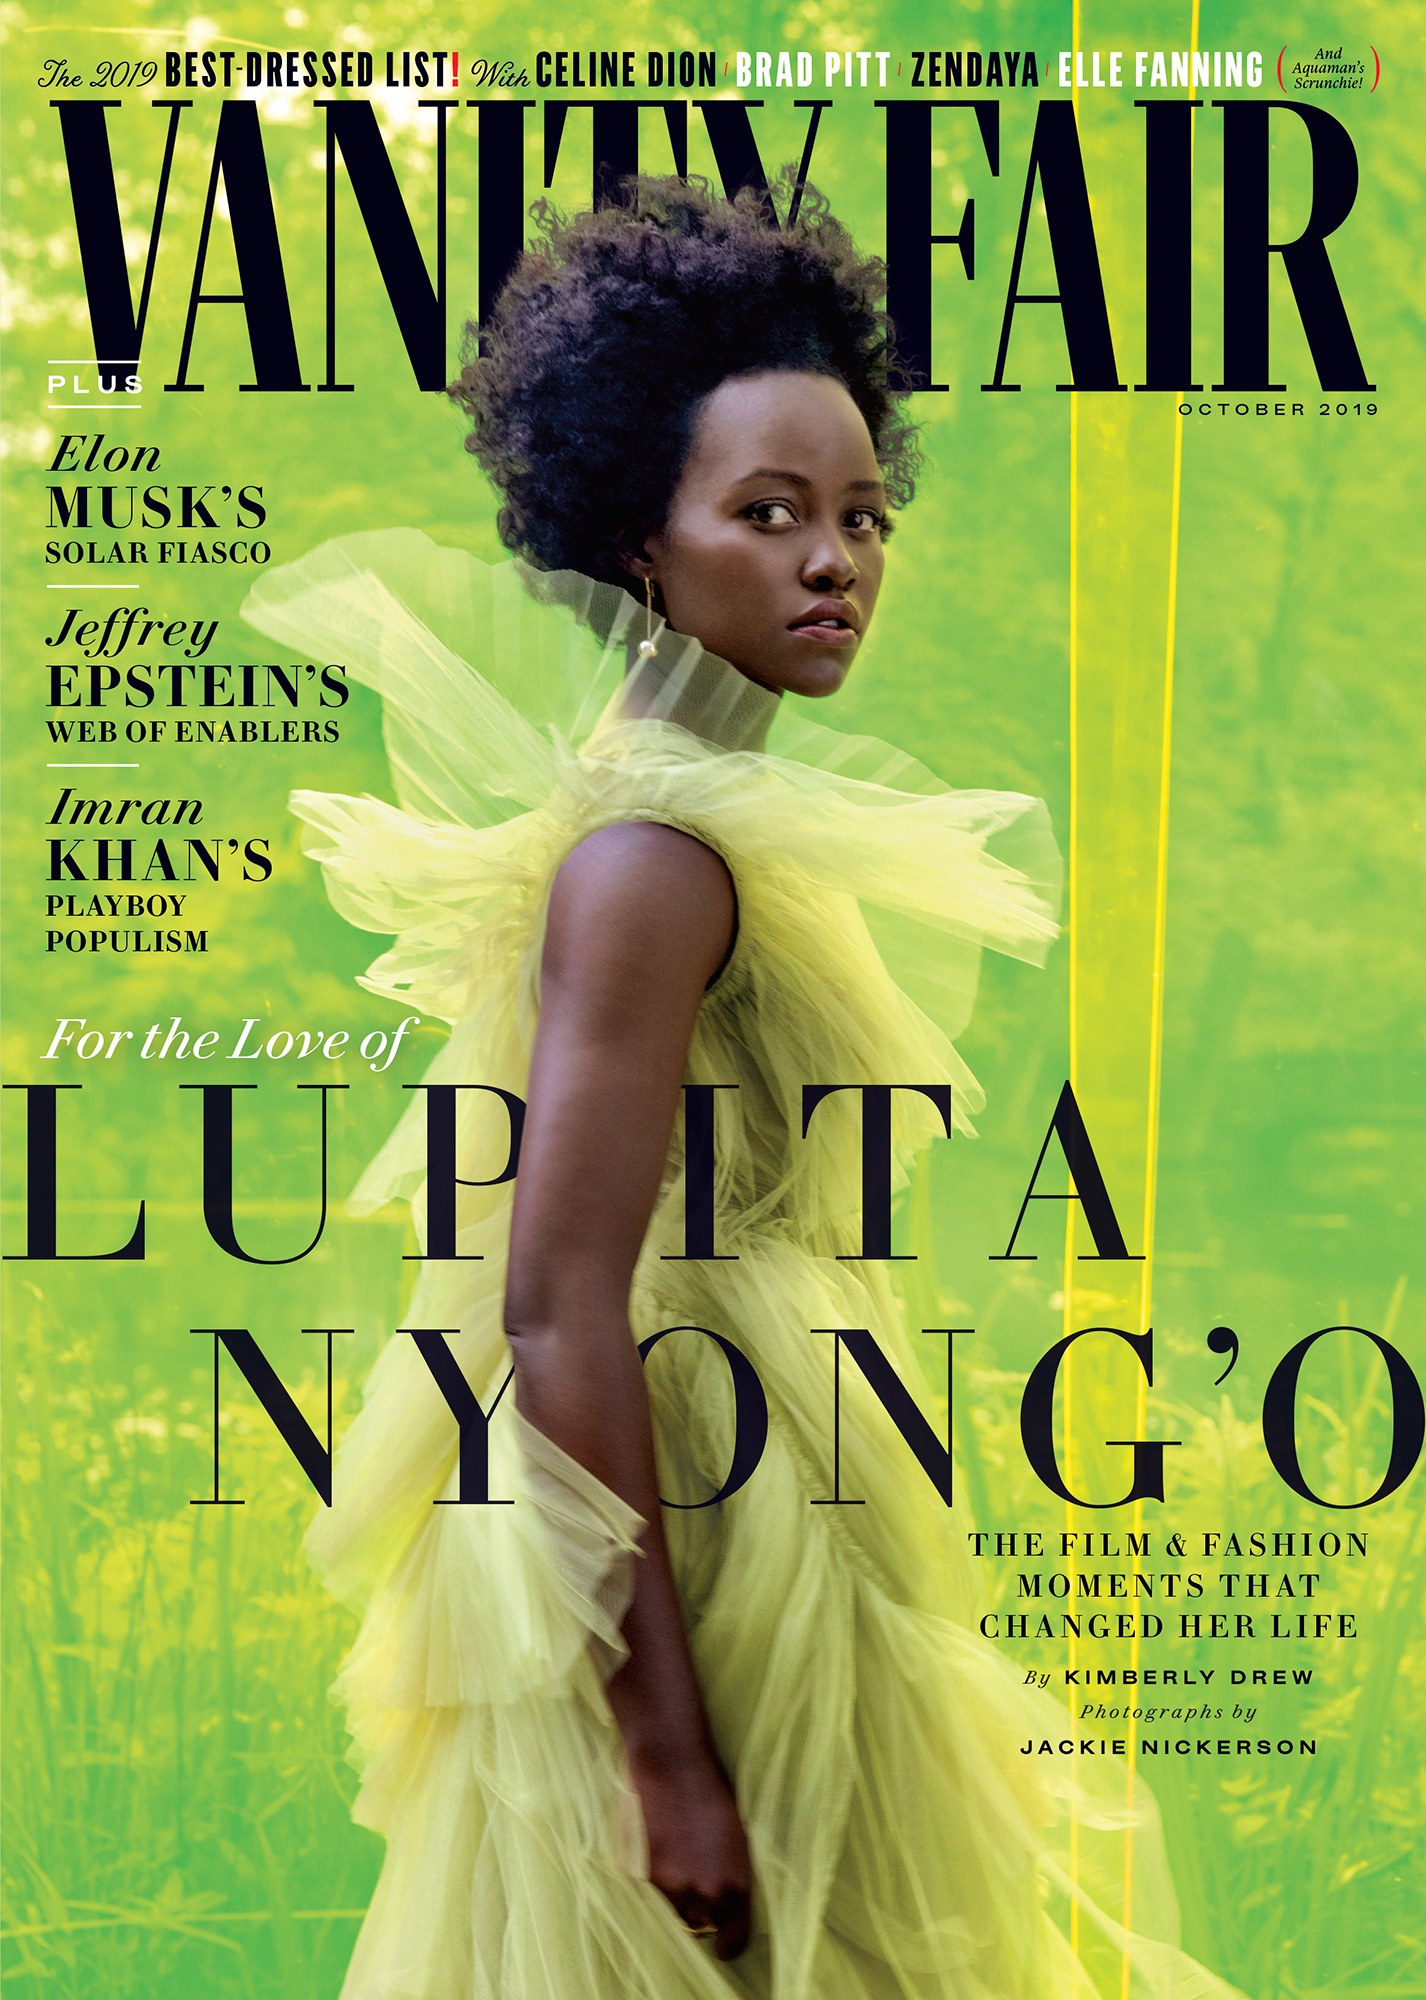 LUPITA NYONG'o. PHOTOGRAPH BY JACKIE NICKERSON; STYLED BY SAMIRA NASR.